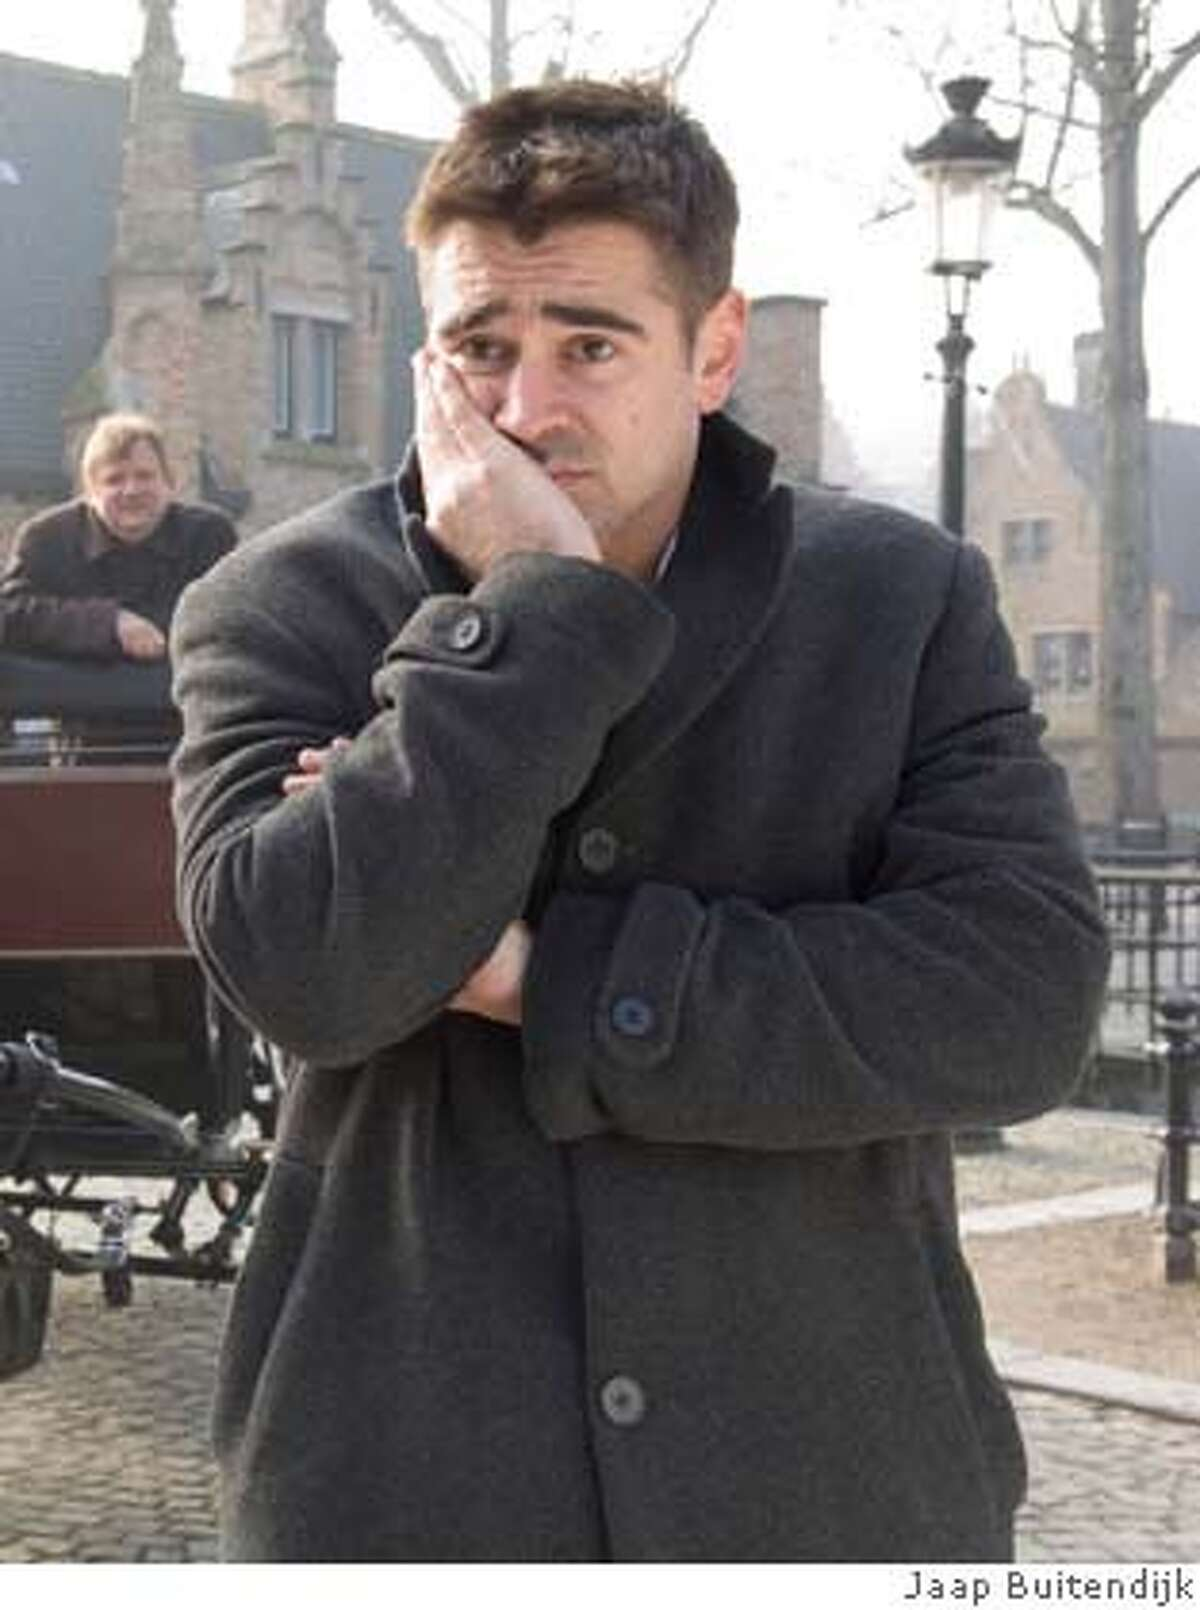 Colin Farrell plays an out-of-place hitman on location in a quaint Belgian city in Martin McDonaghs action-comedy,